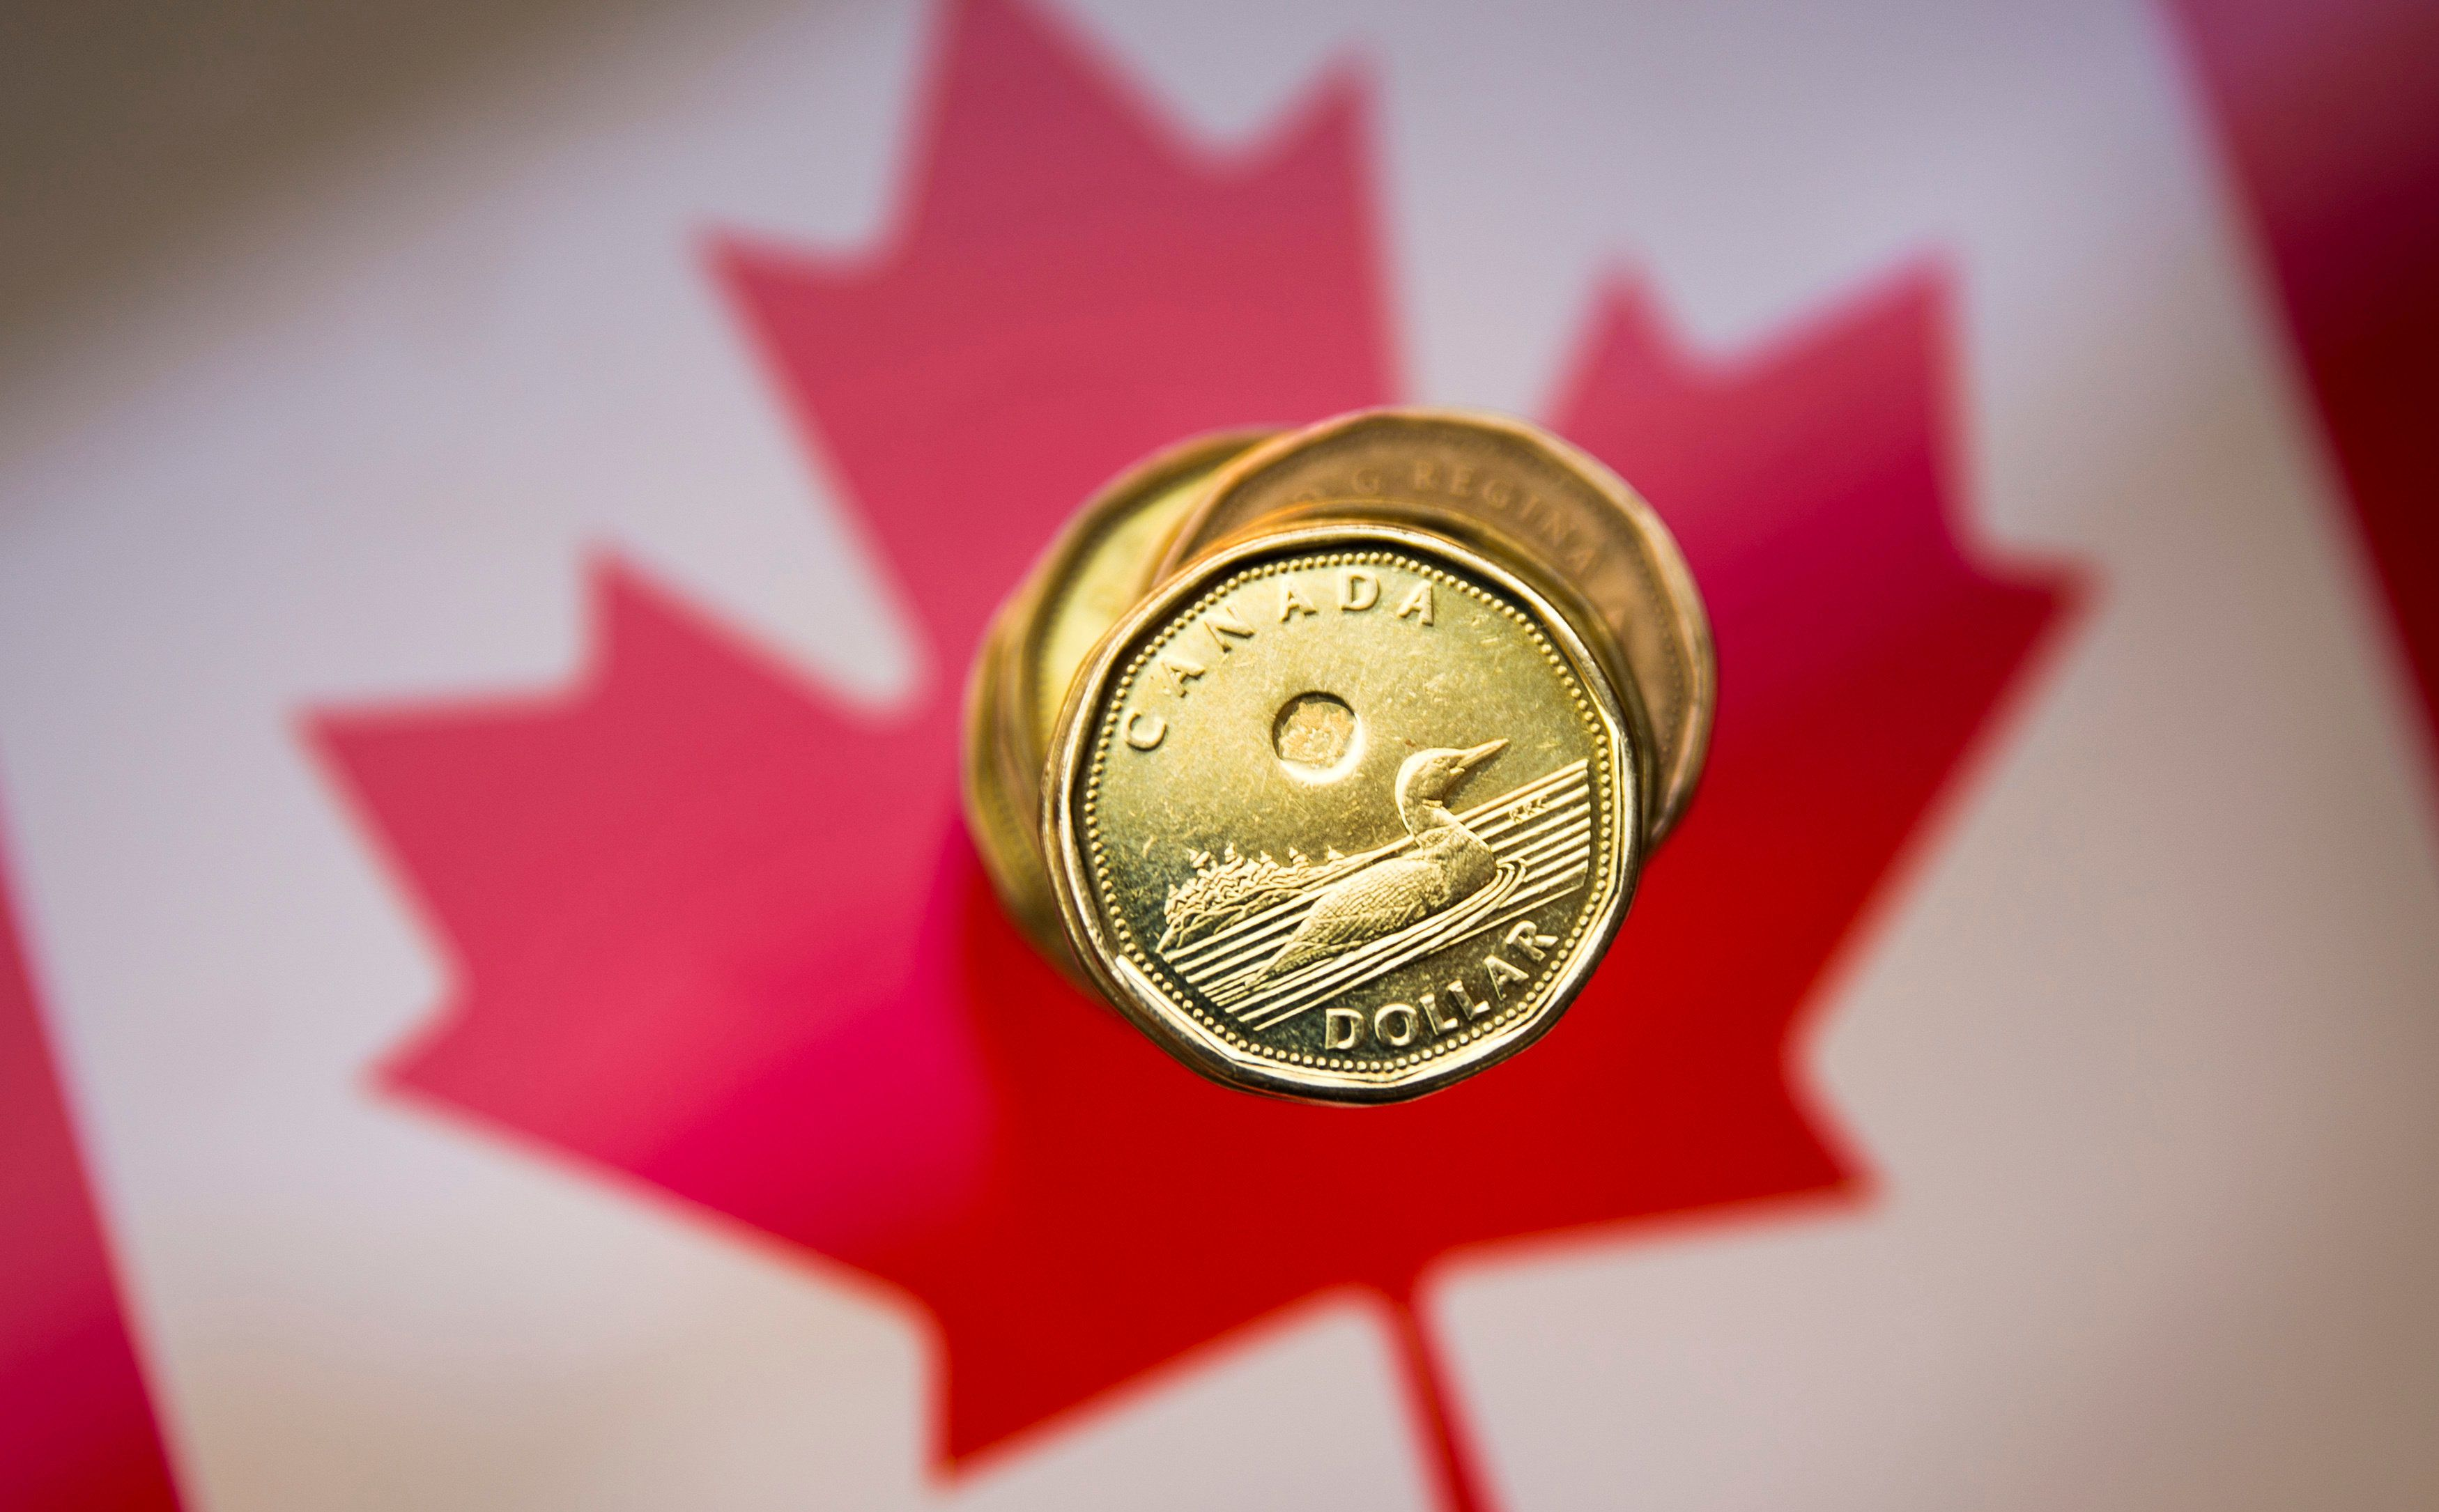 Canadian dollar notches 11-week high as 'risk-on' boosts commodity currencies